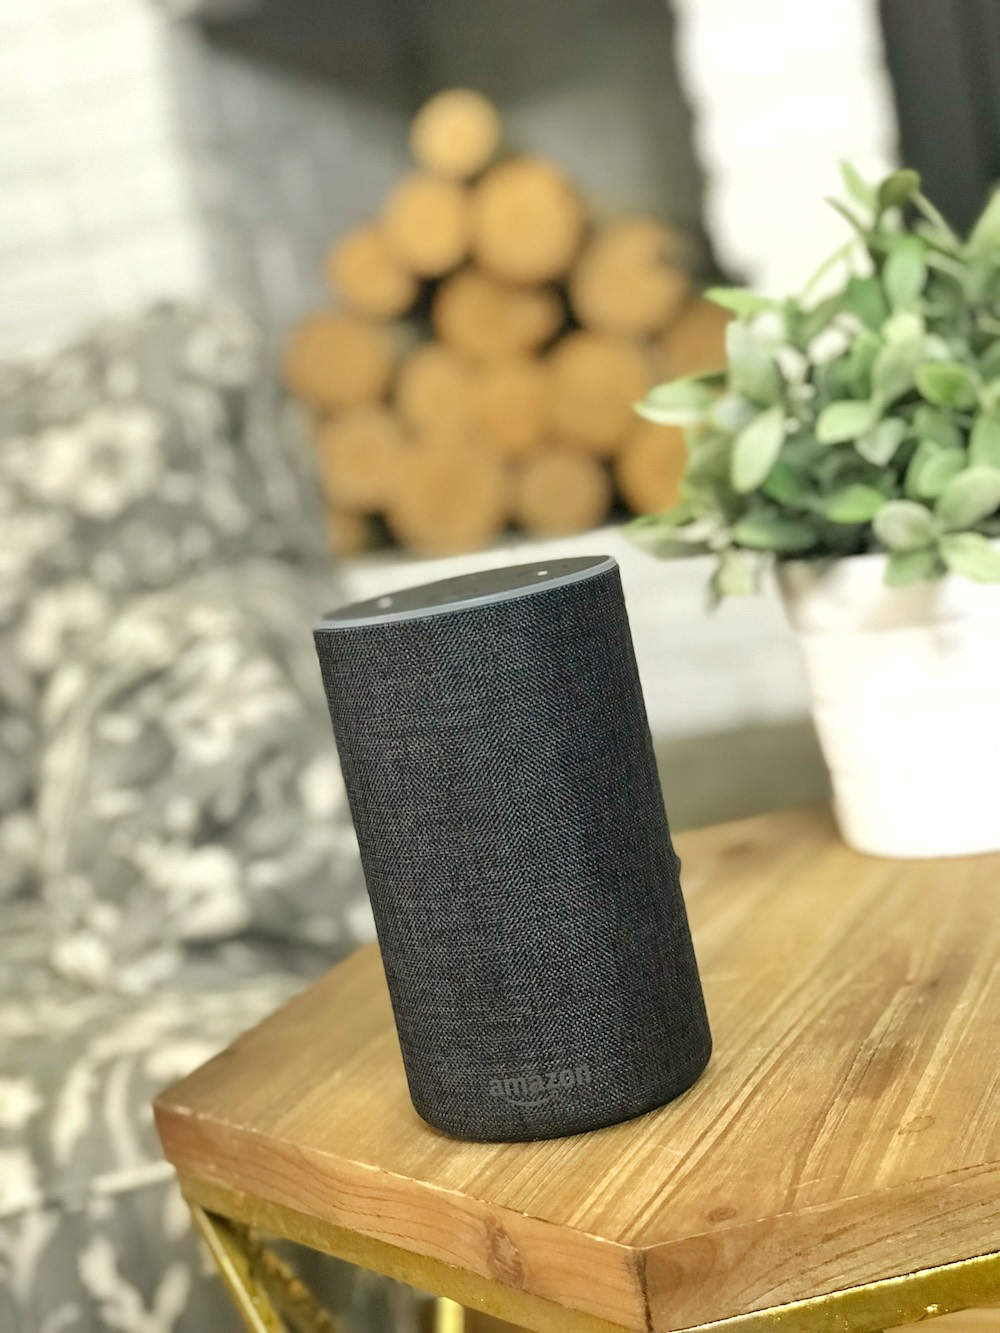 Amazon Echo Amazon Alexa close on sidetable